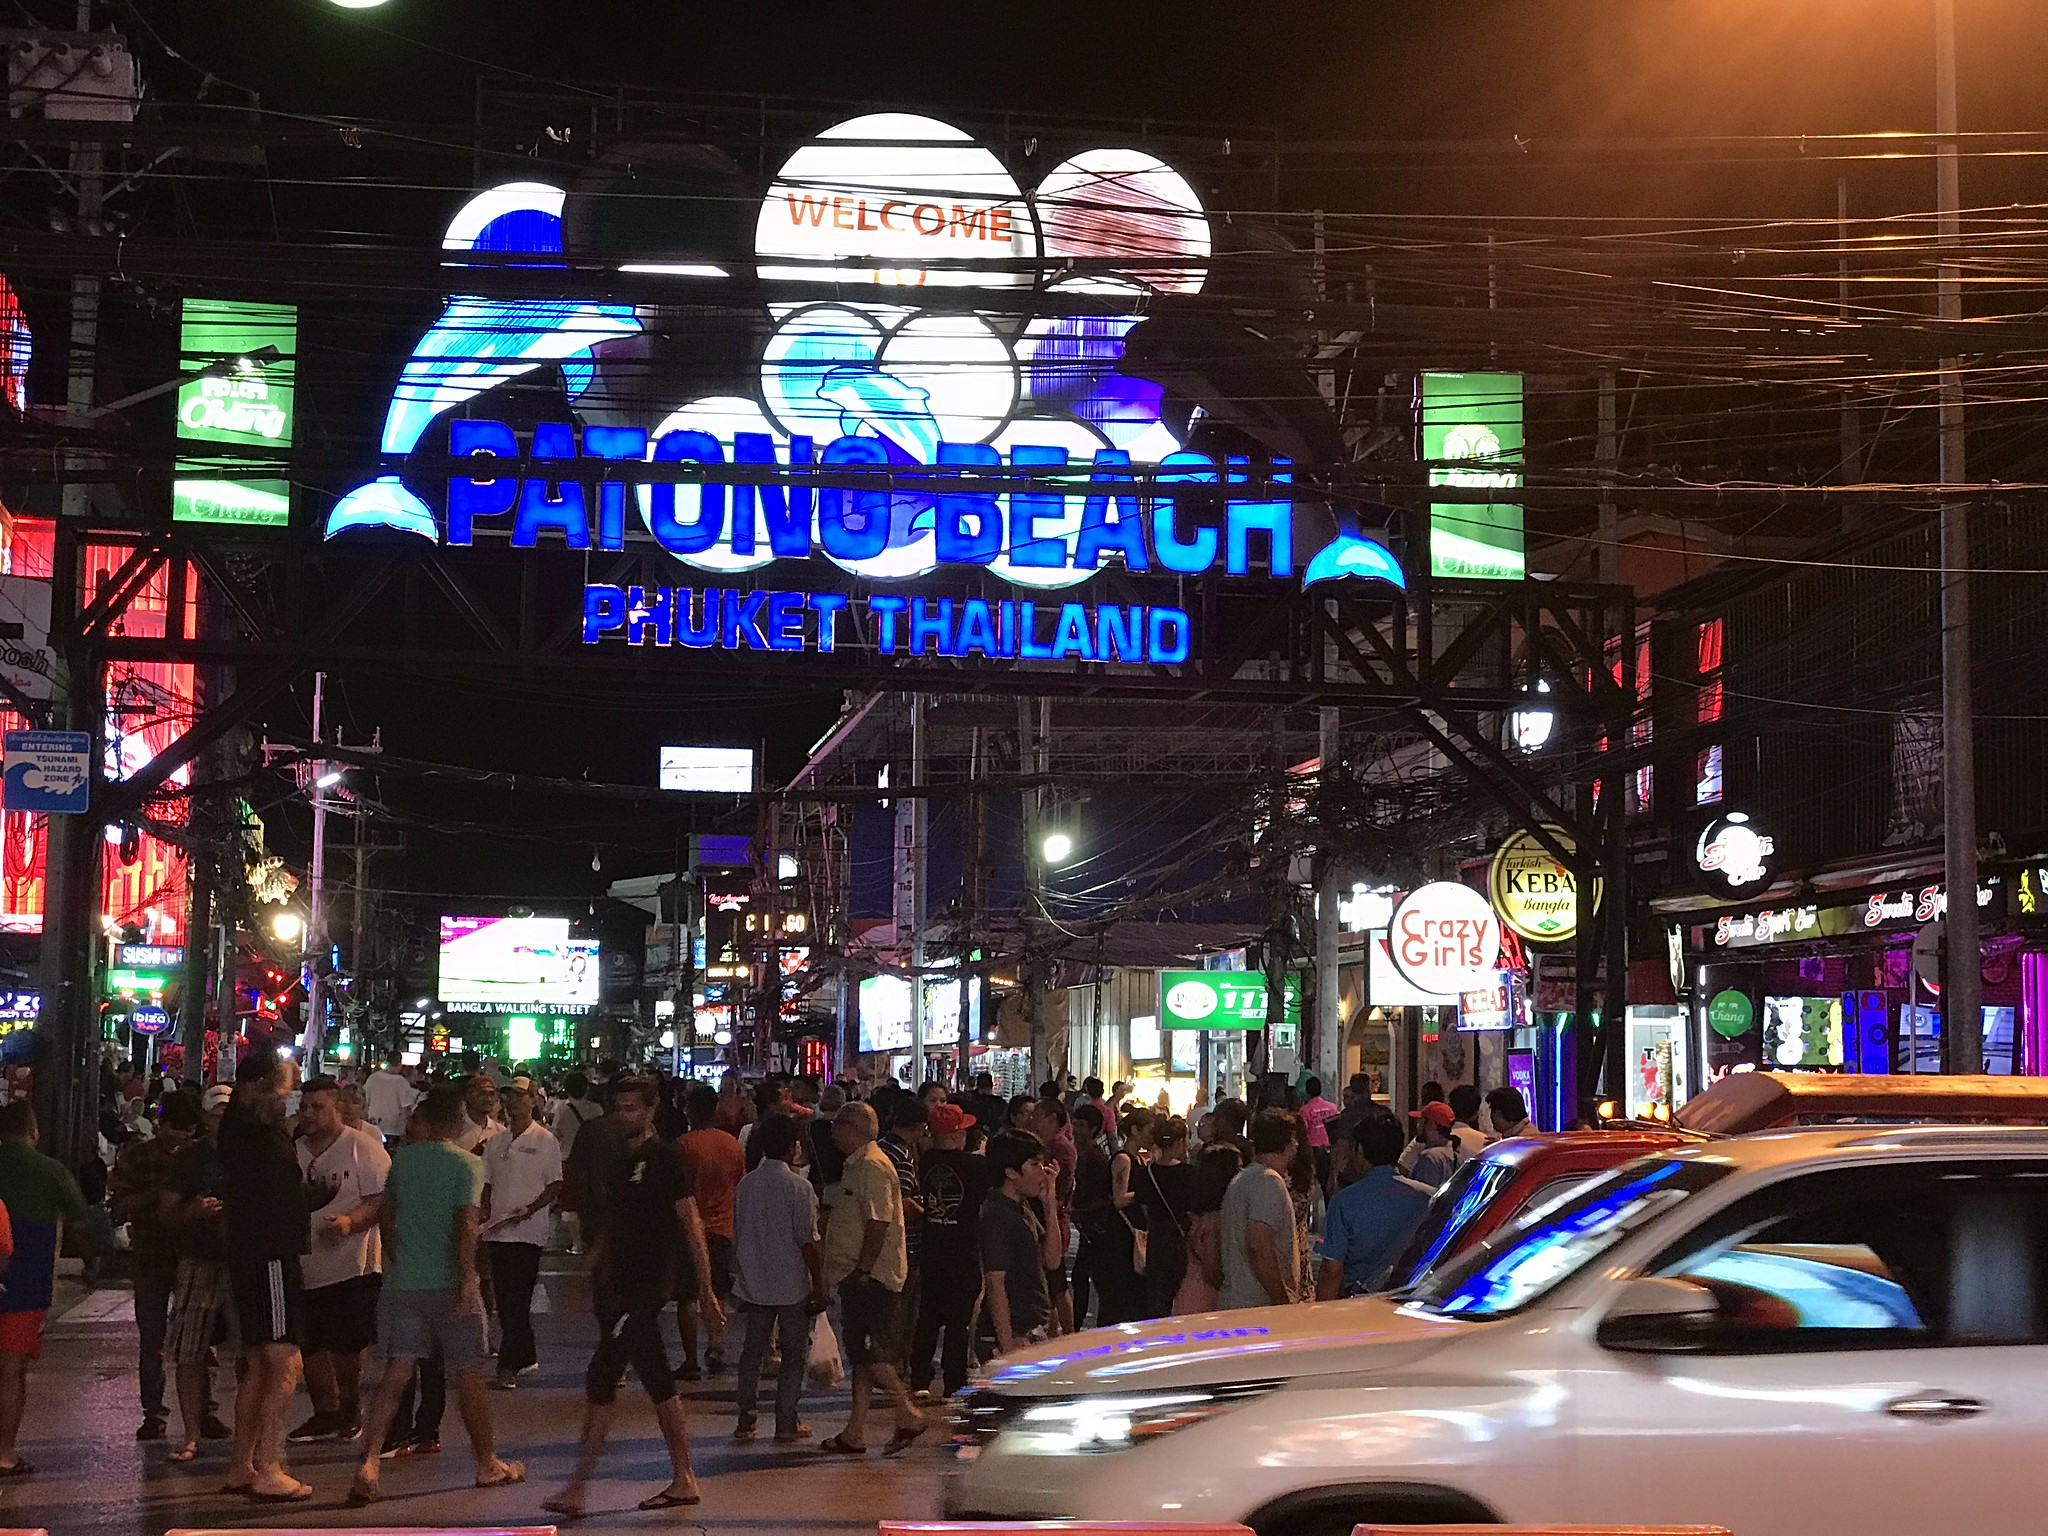 Enjoy Nightlife At Patong Beach - Experience Phuket At Its Best at This Place To Visit